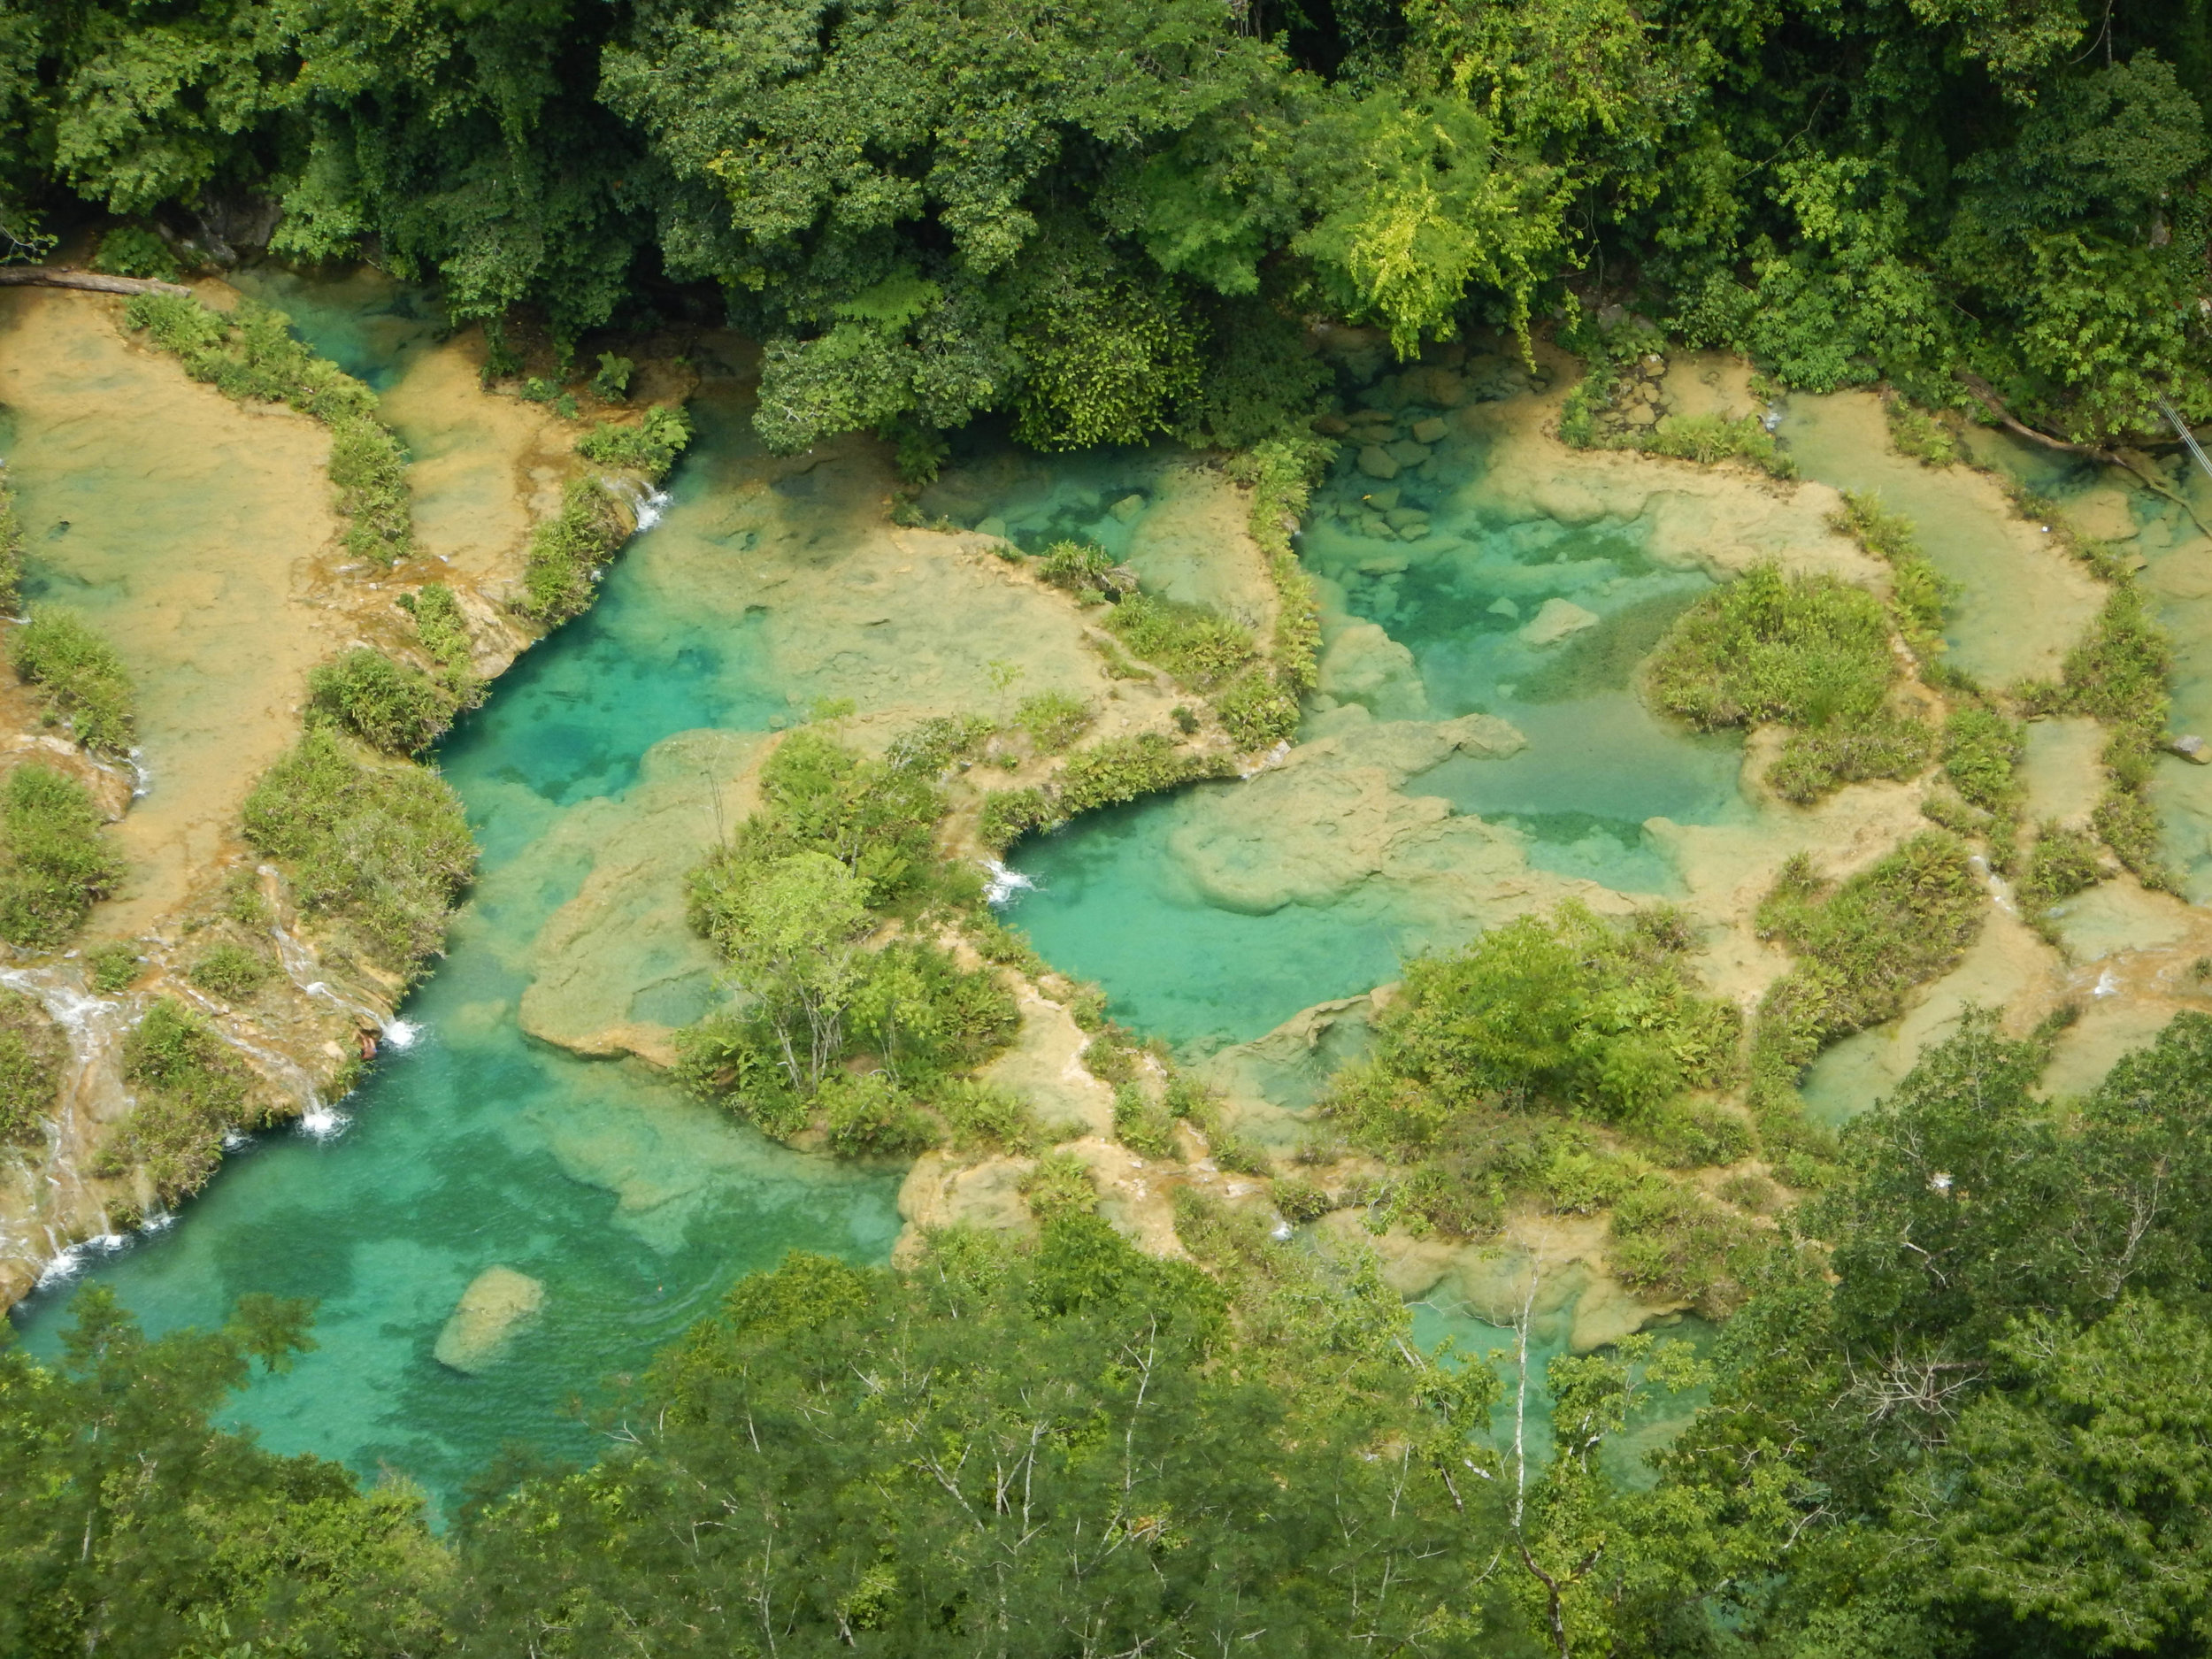 semuc champey from mirador lower pools.jpg